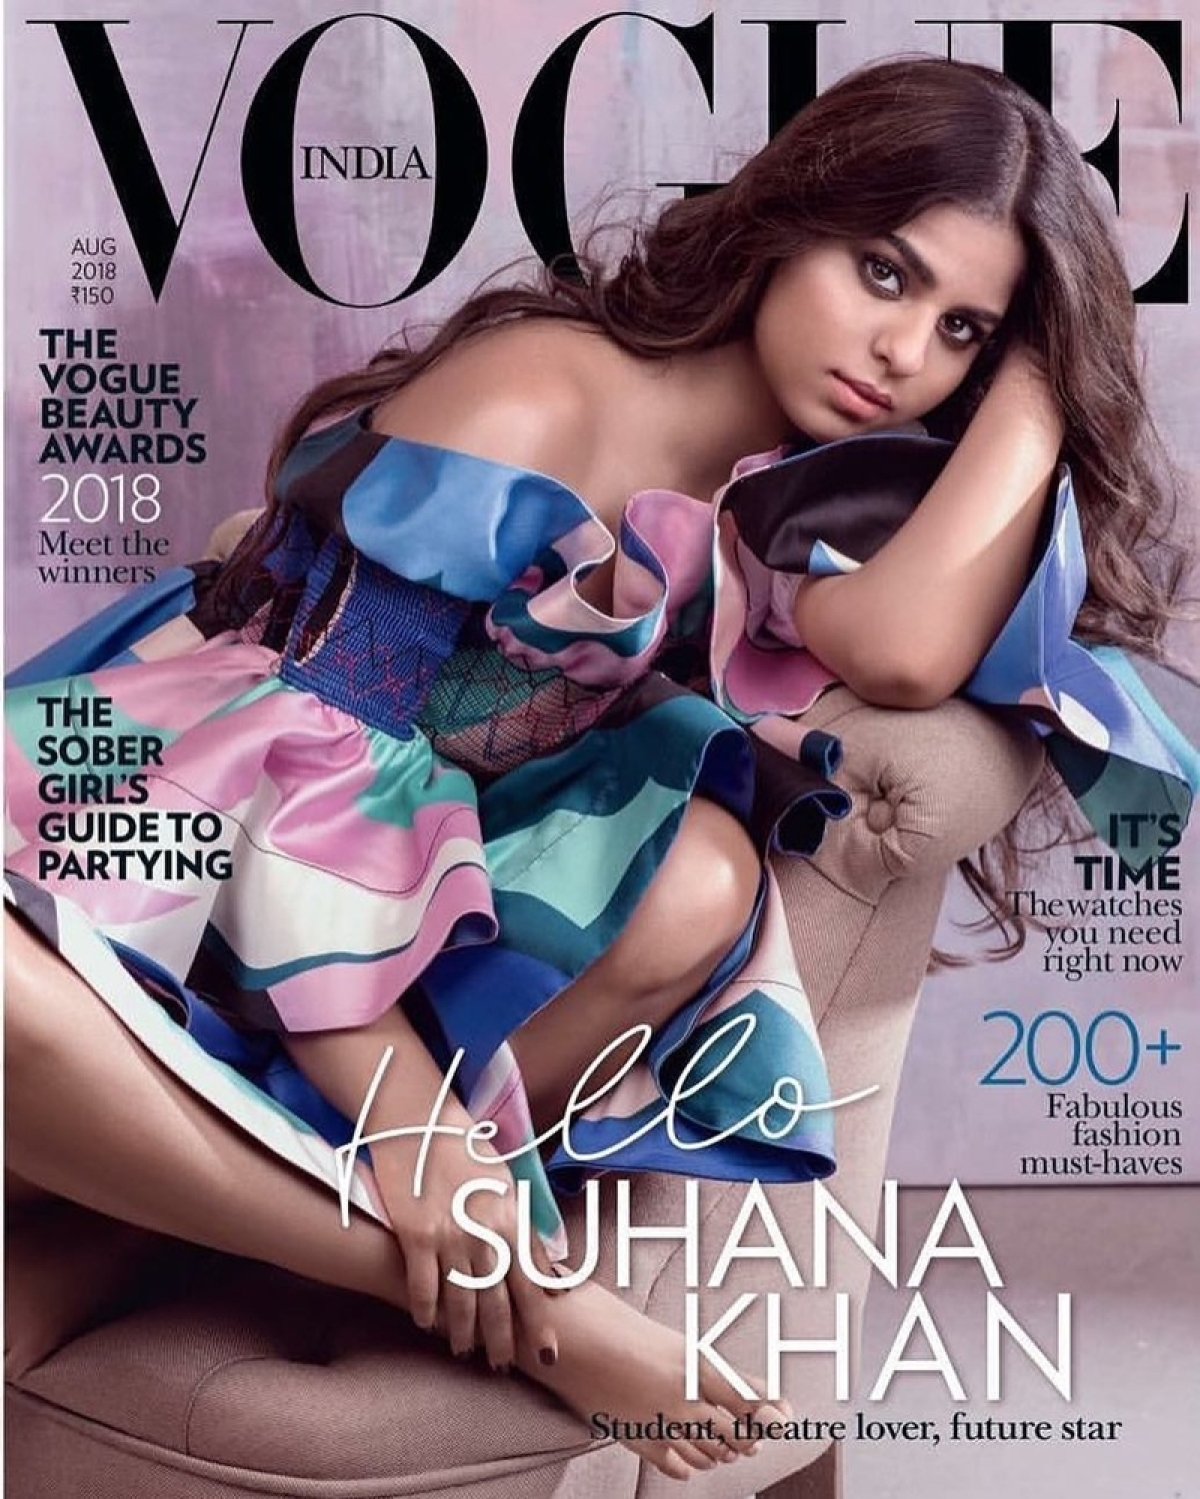 Karan Johar welcomes Suhana Khan to the spotlight as sizzles on her first ever magazine cover